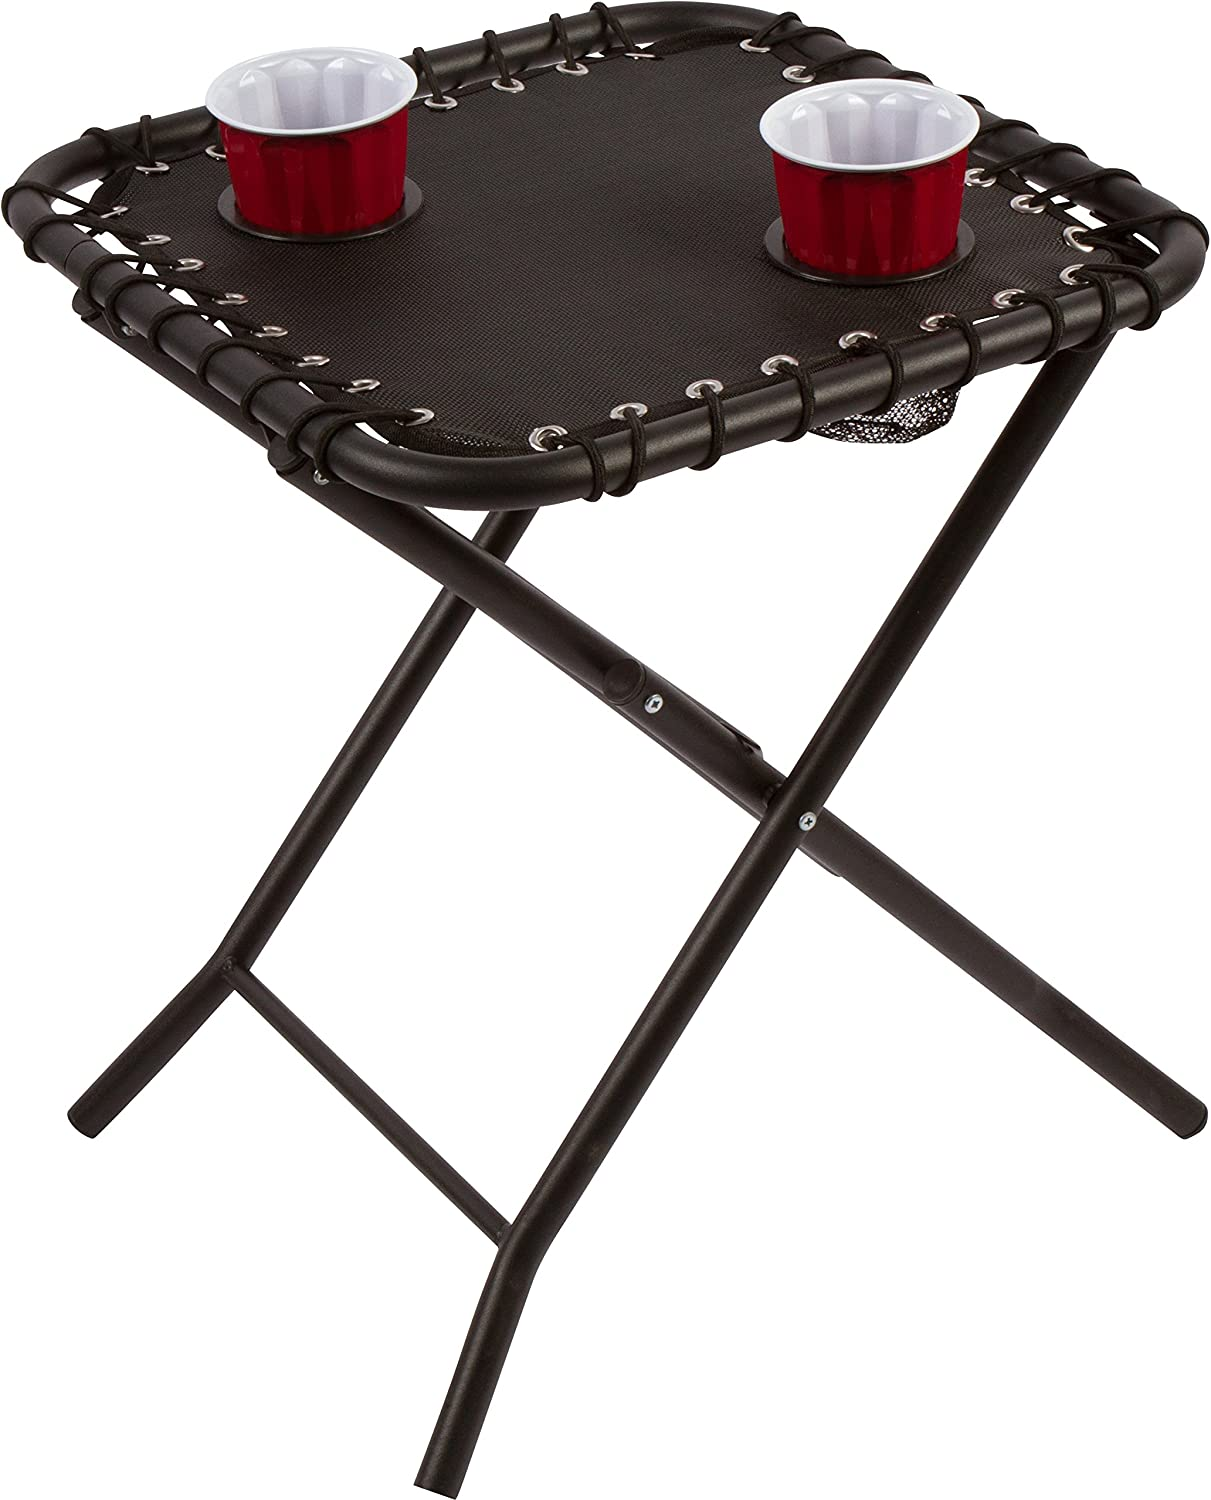 17.5 Folding Textaline Side Table with Mesh Drink Holders for Camping, Patio, Picnics by Trademark Innovations